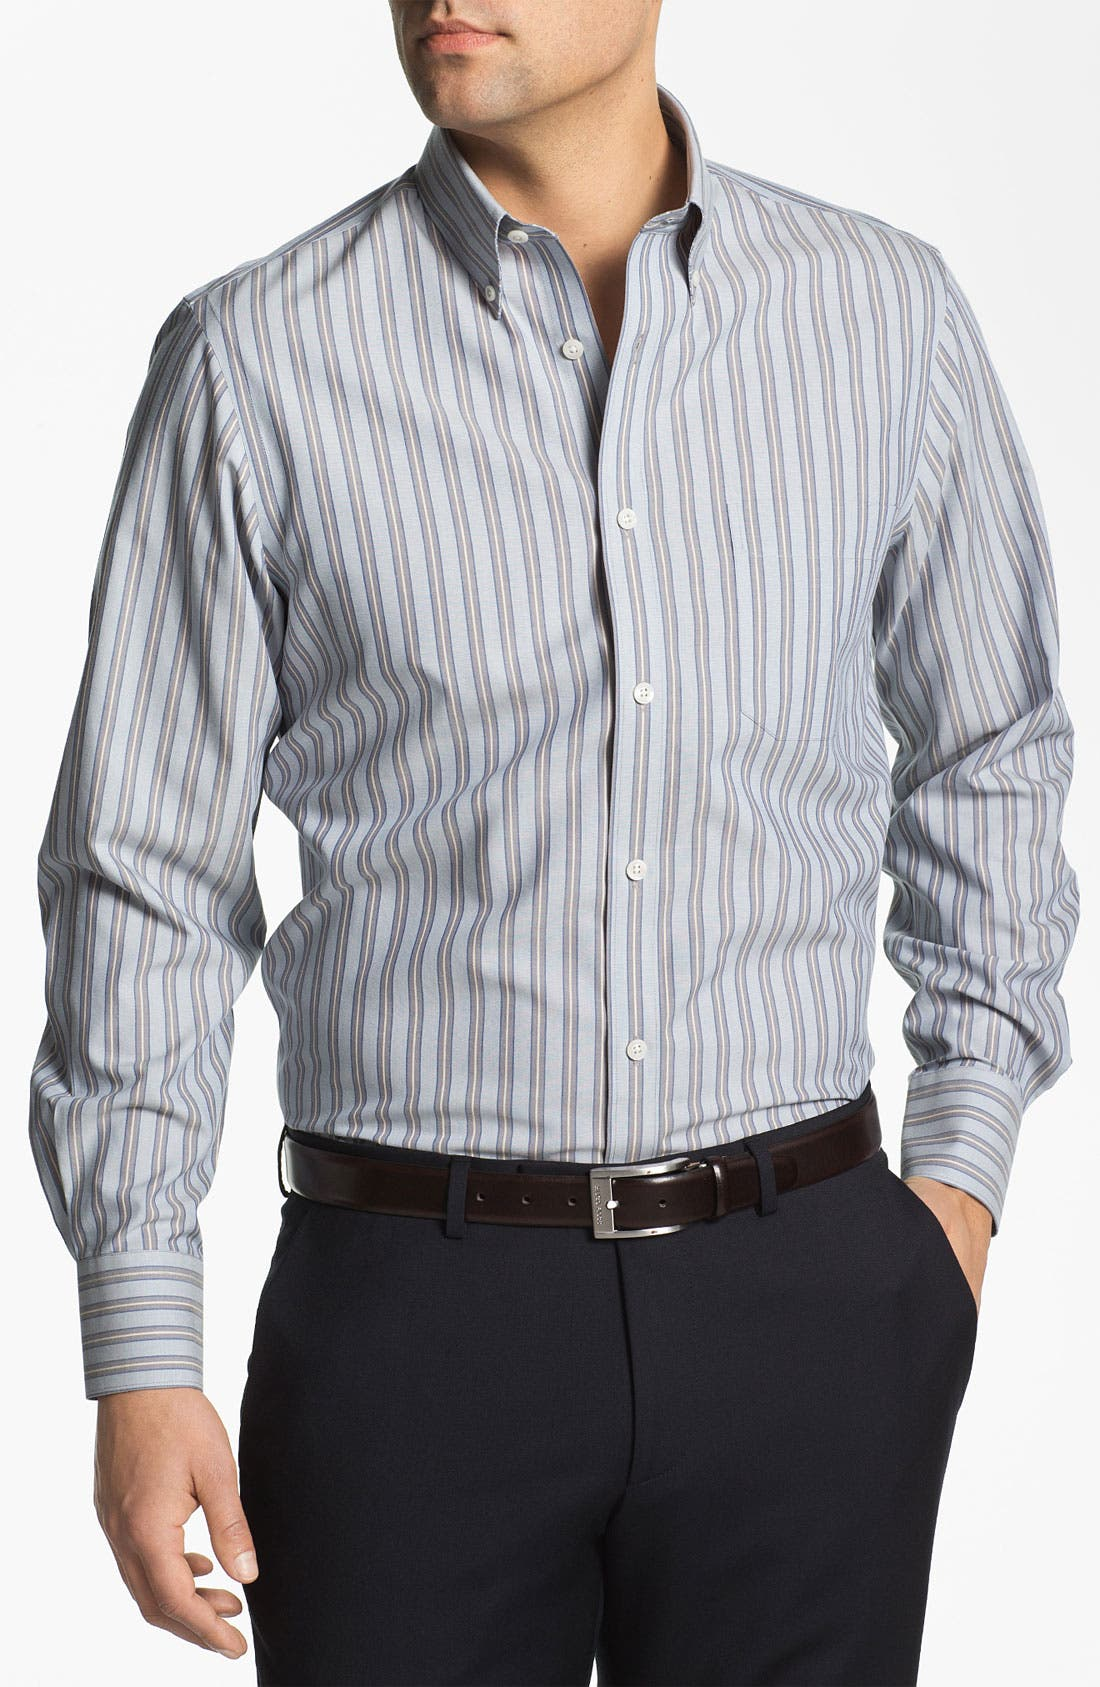 Main Image - Nordstrom Regular Fit Sport Shirt